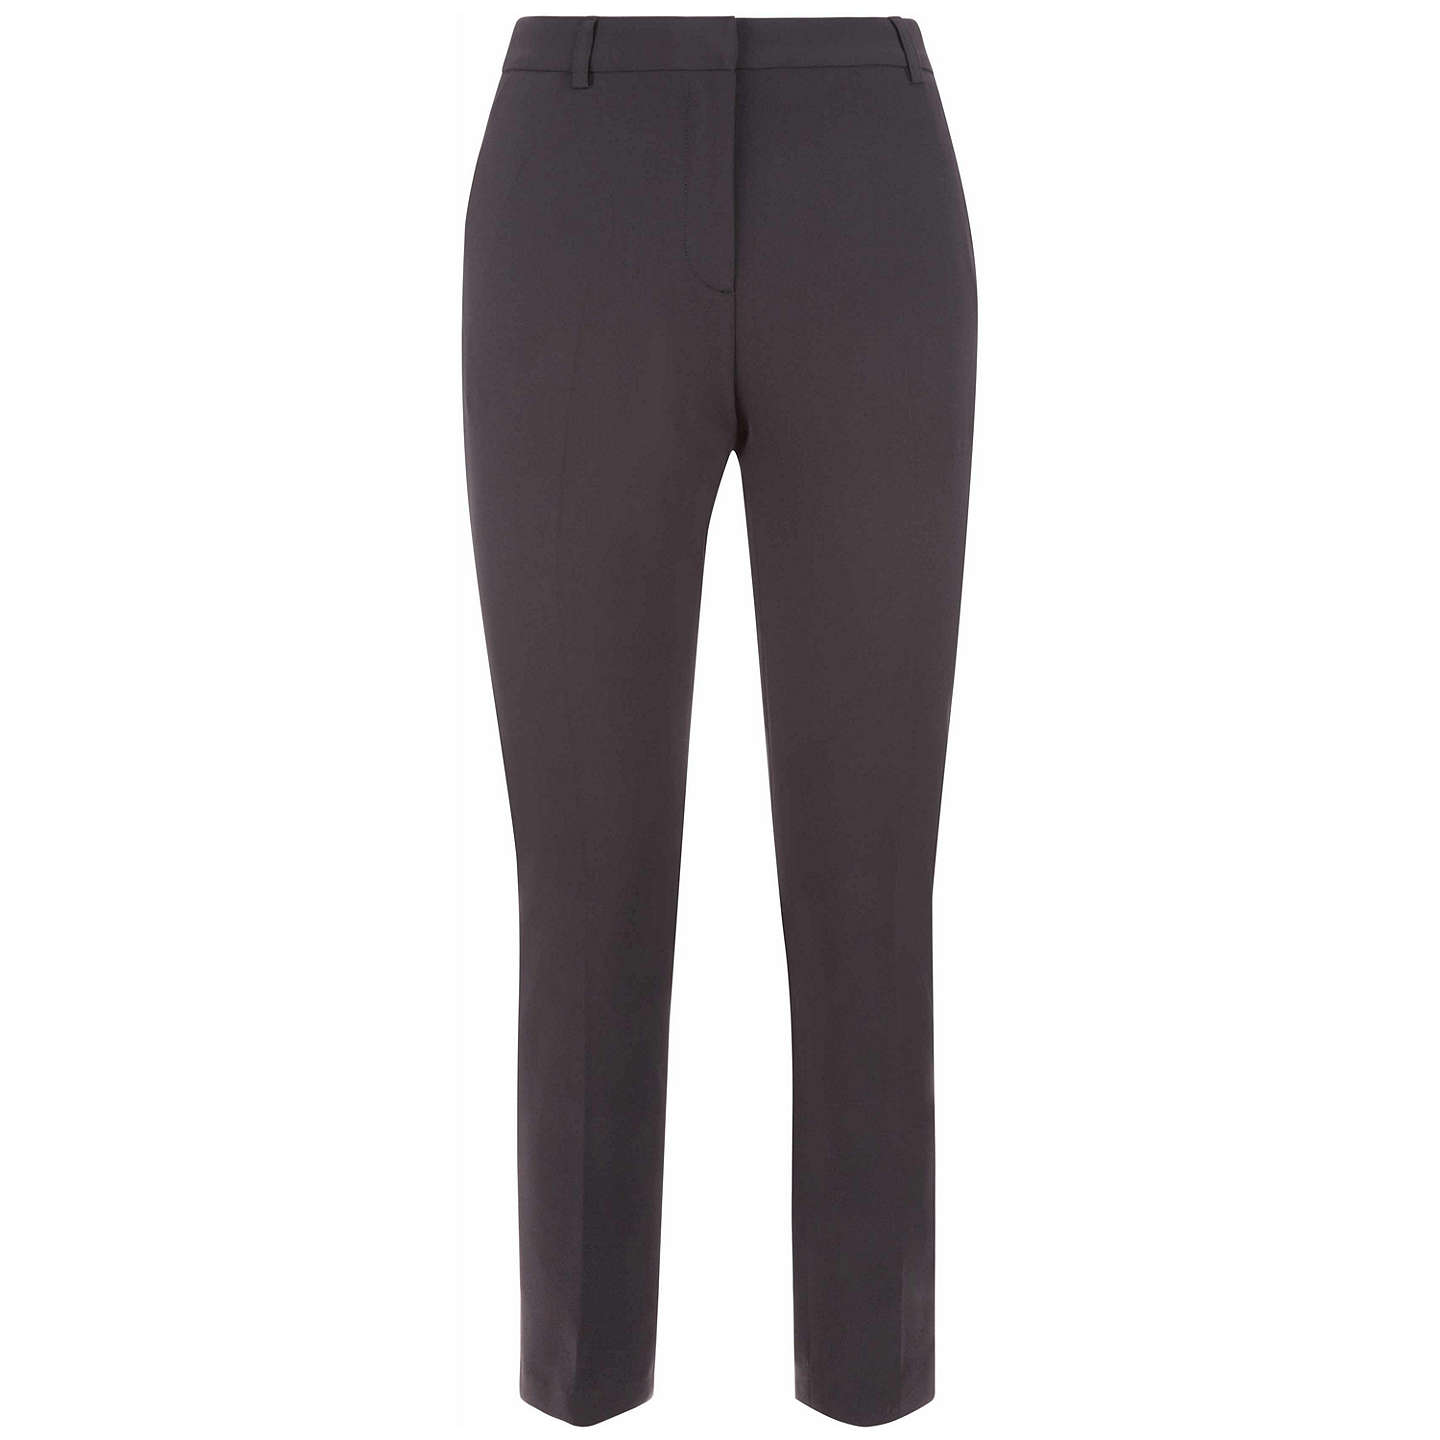 BuyJaeger Skinny Tailored Trousers, Black, 6 Online at johnlewis.com